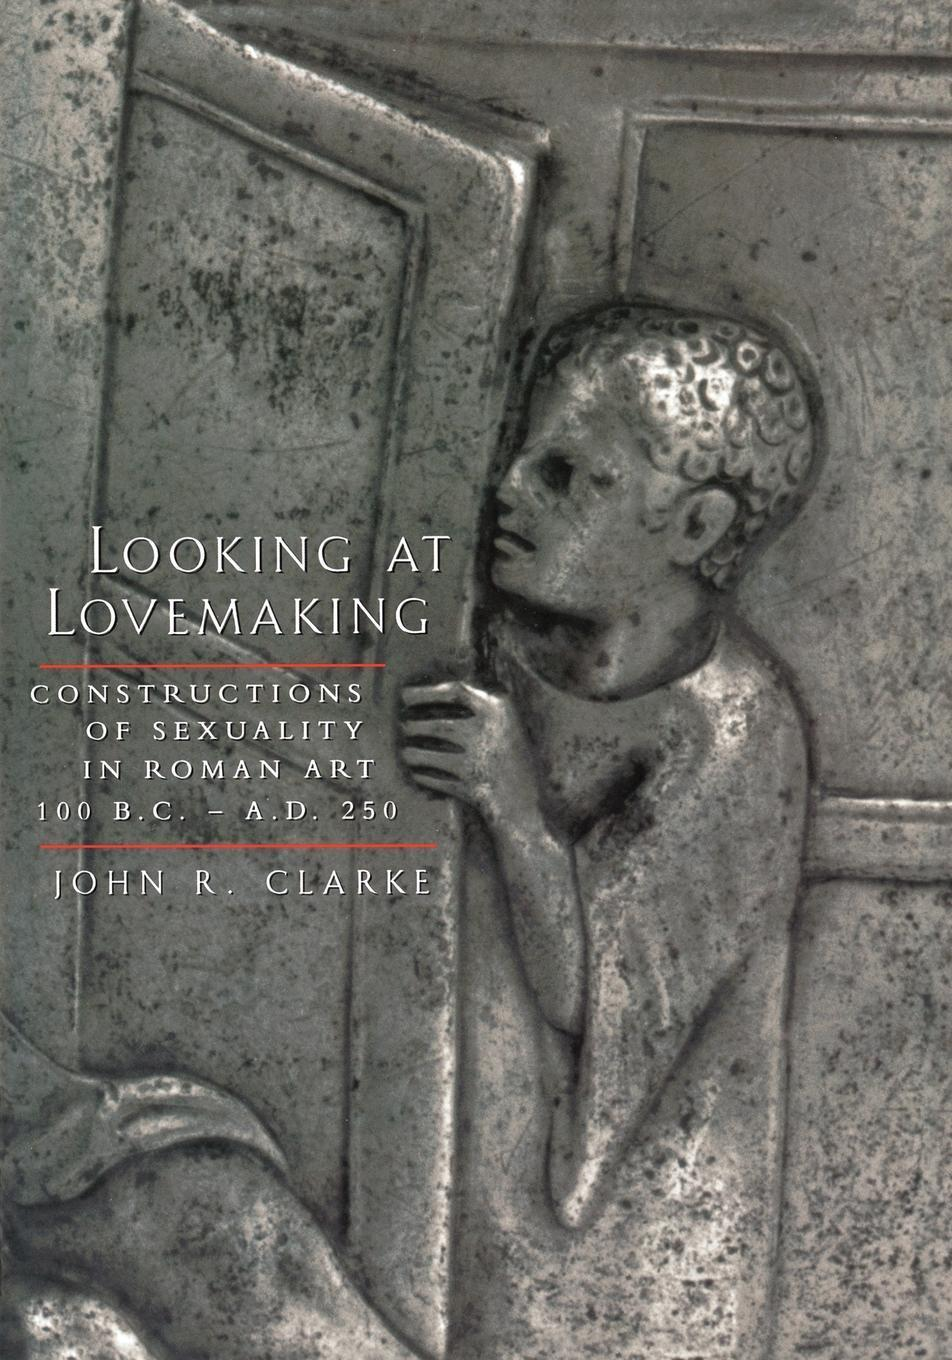 Looking at Lovemaking: Constructions of Sexuality in Roman Art, 100 B.C. - A.D. 250